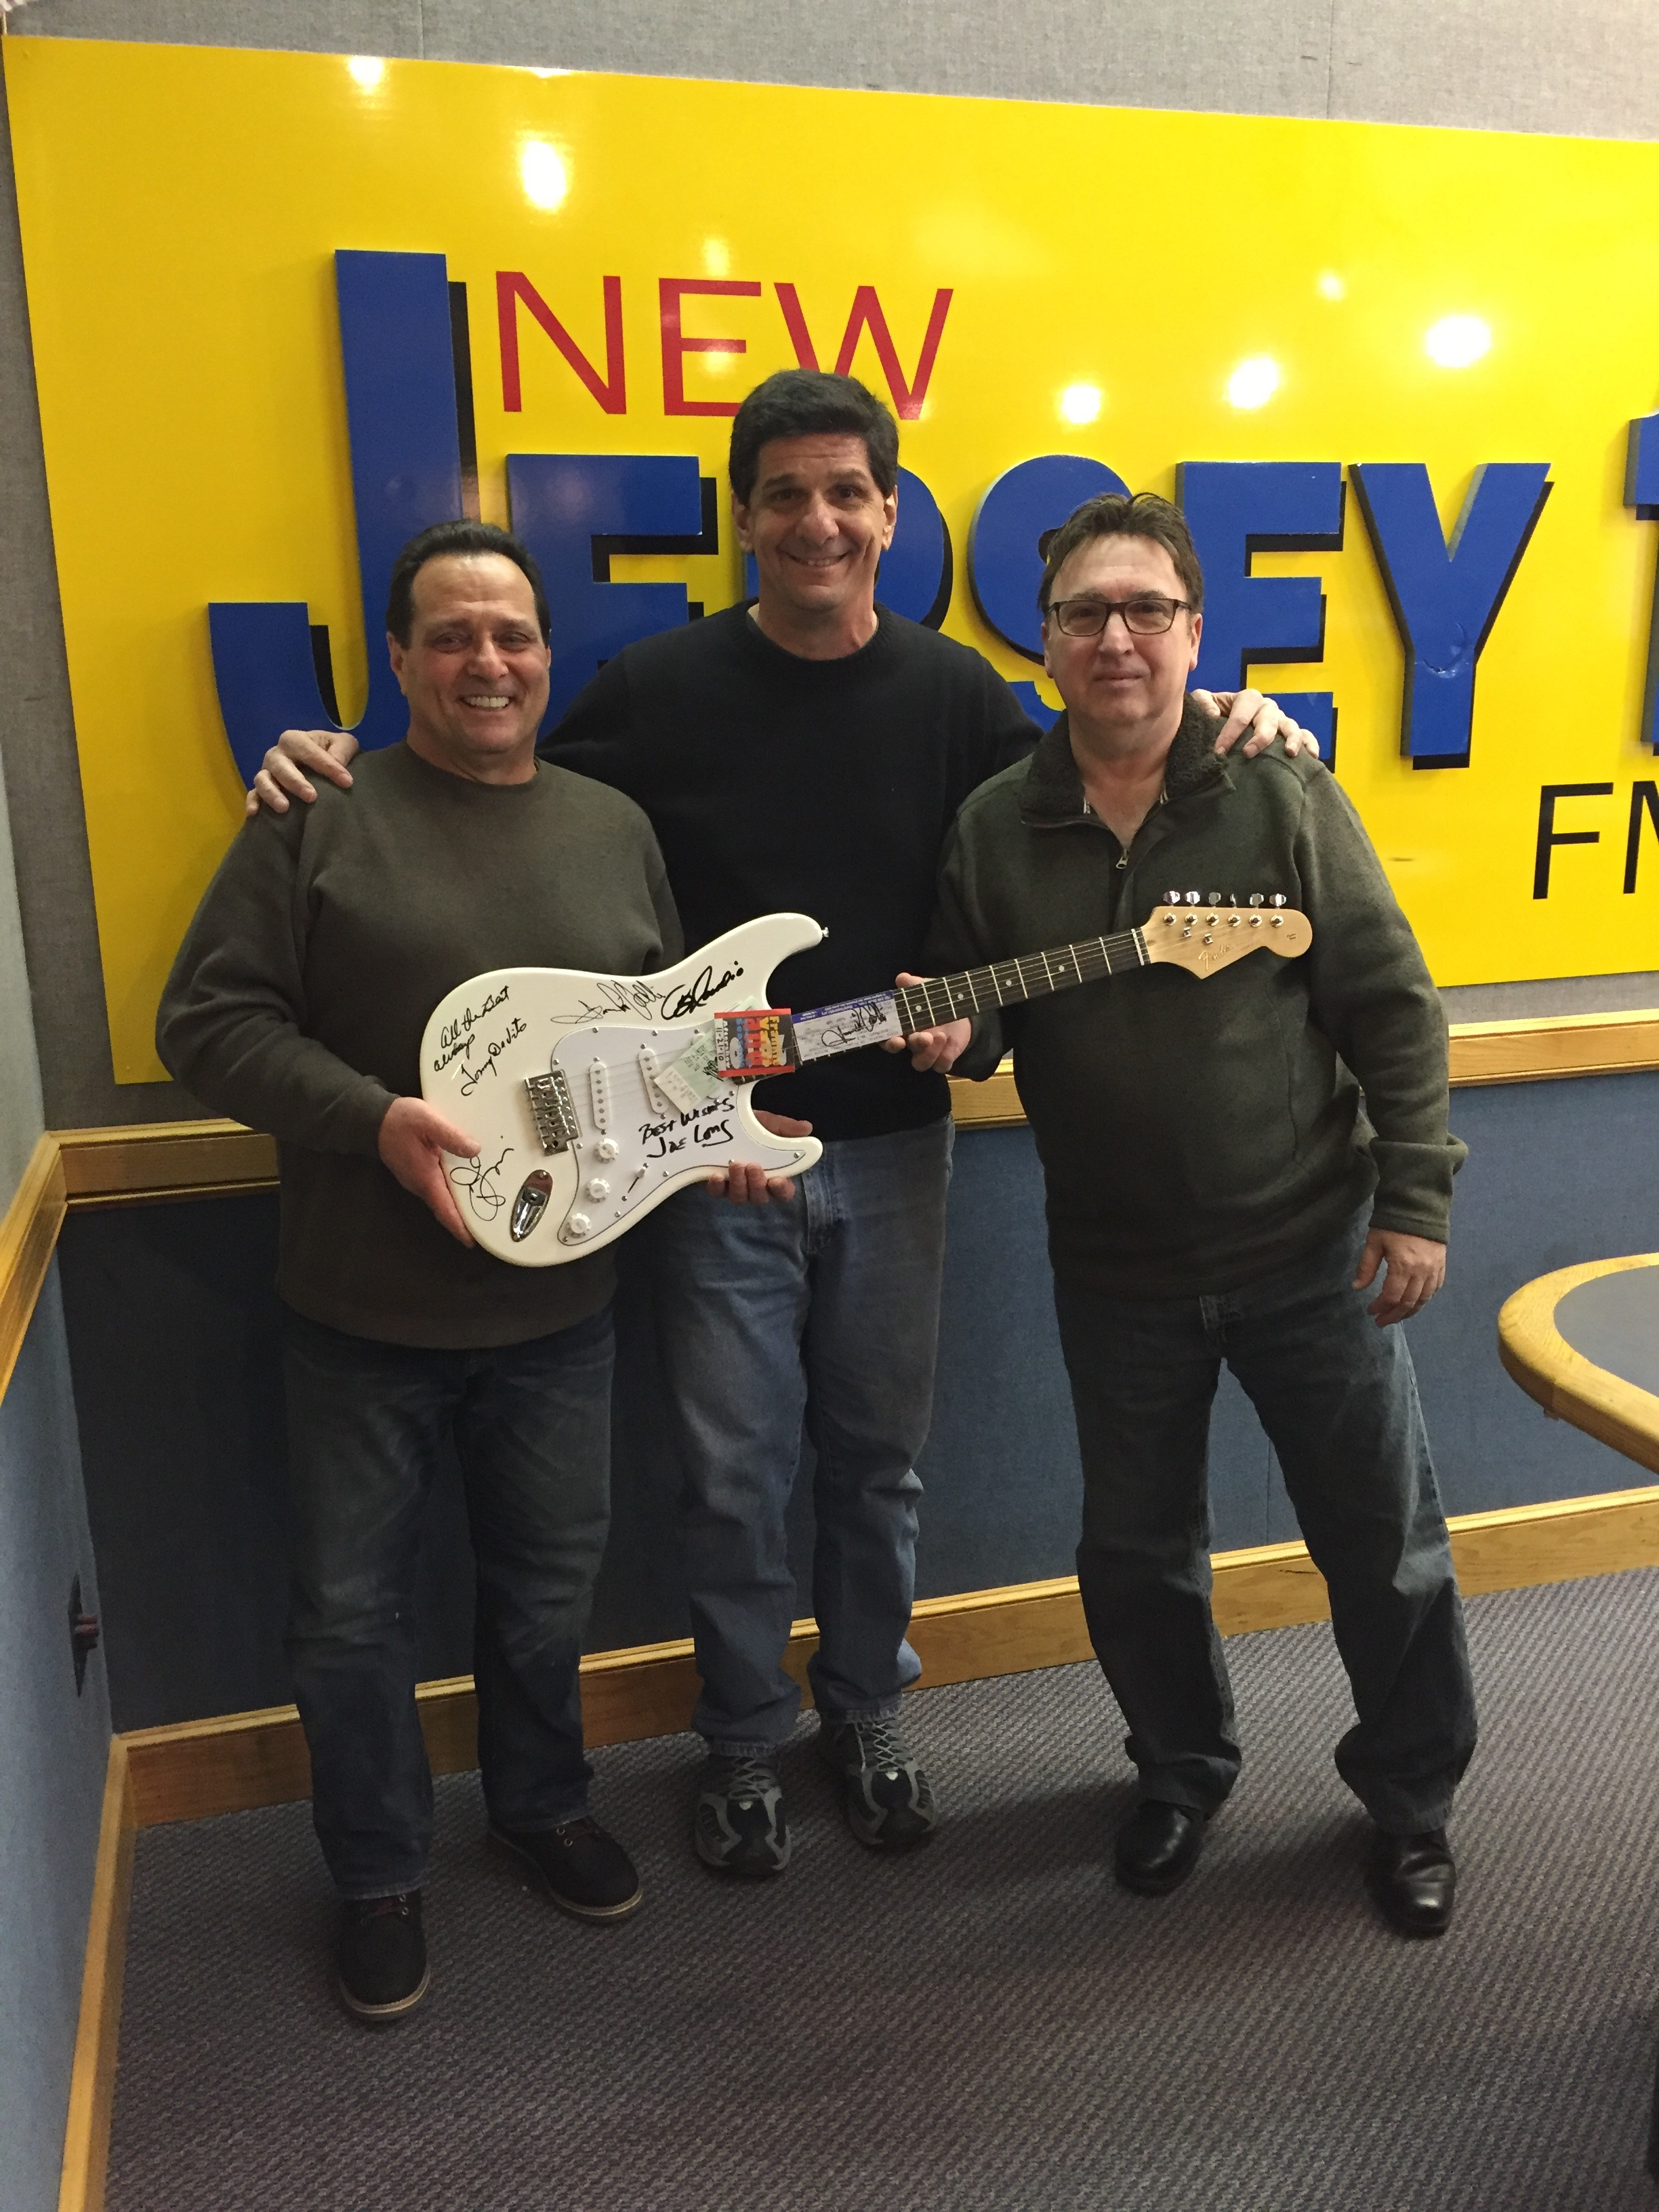 Steve Trevelise of NJ`s 101.5 & Jersey Four Cast Members